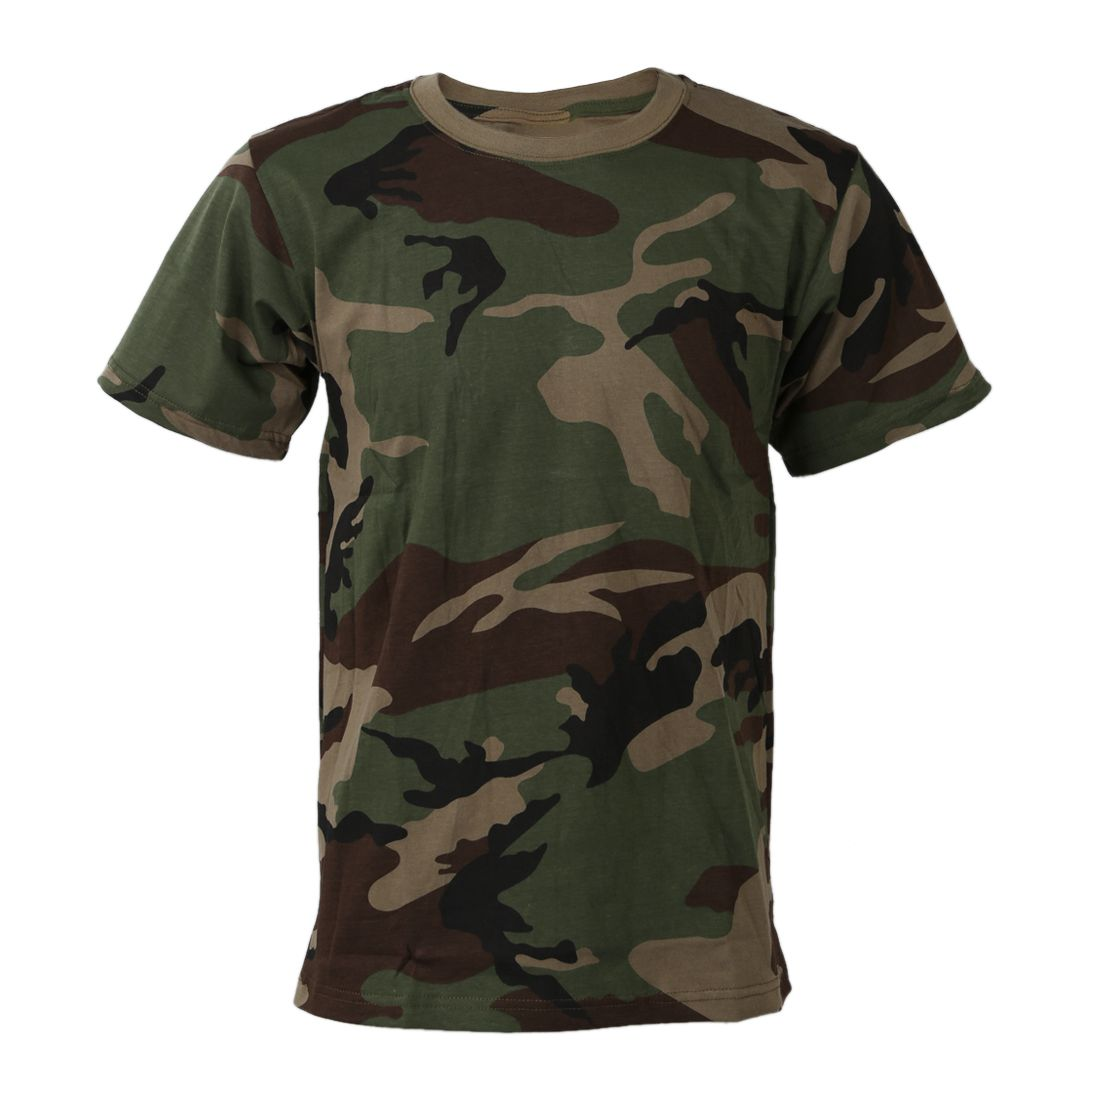 Summer Outdoor Hunting Camouflage T-shirt Men Breathable Army Tactical Combat T Shirt Military Dry Sport Outdoor